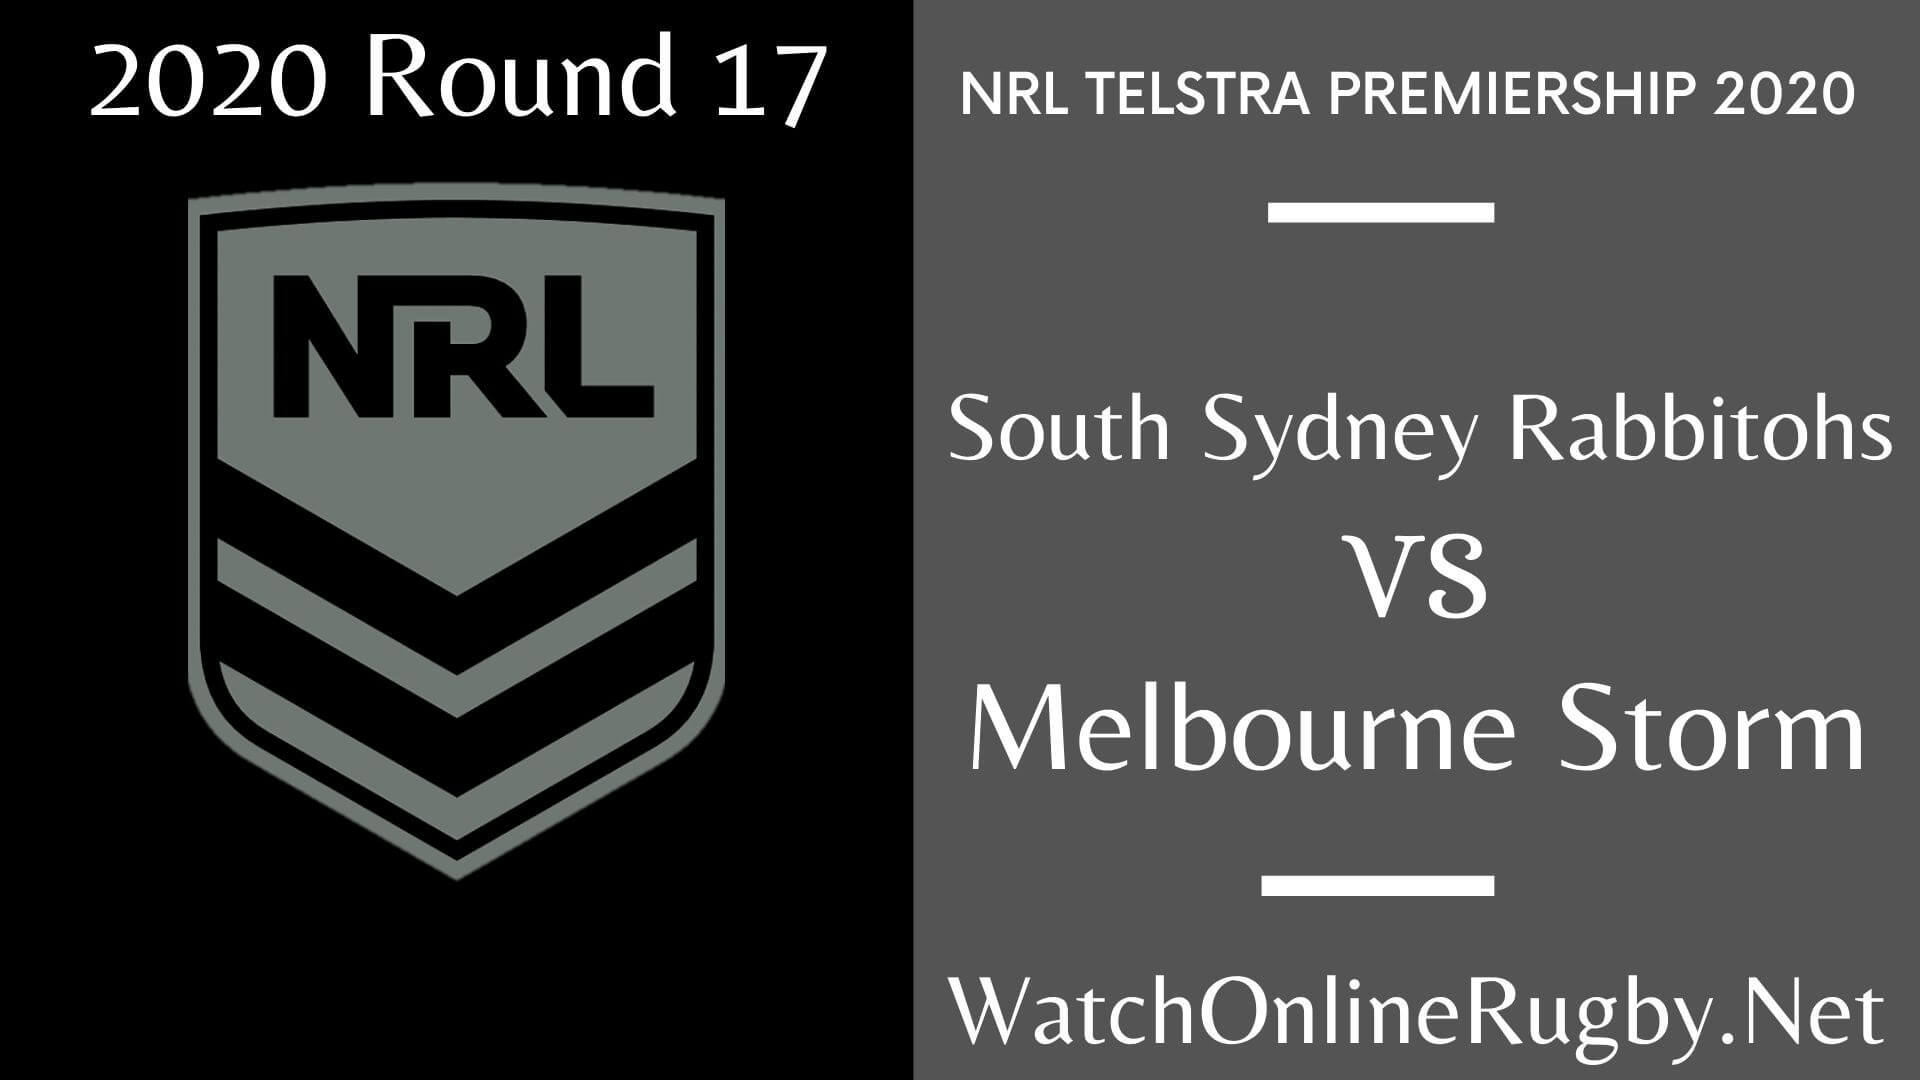 Rabbitohs Vs Storm Highlights 2020 Round 17